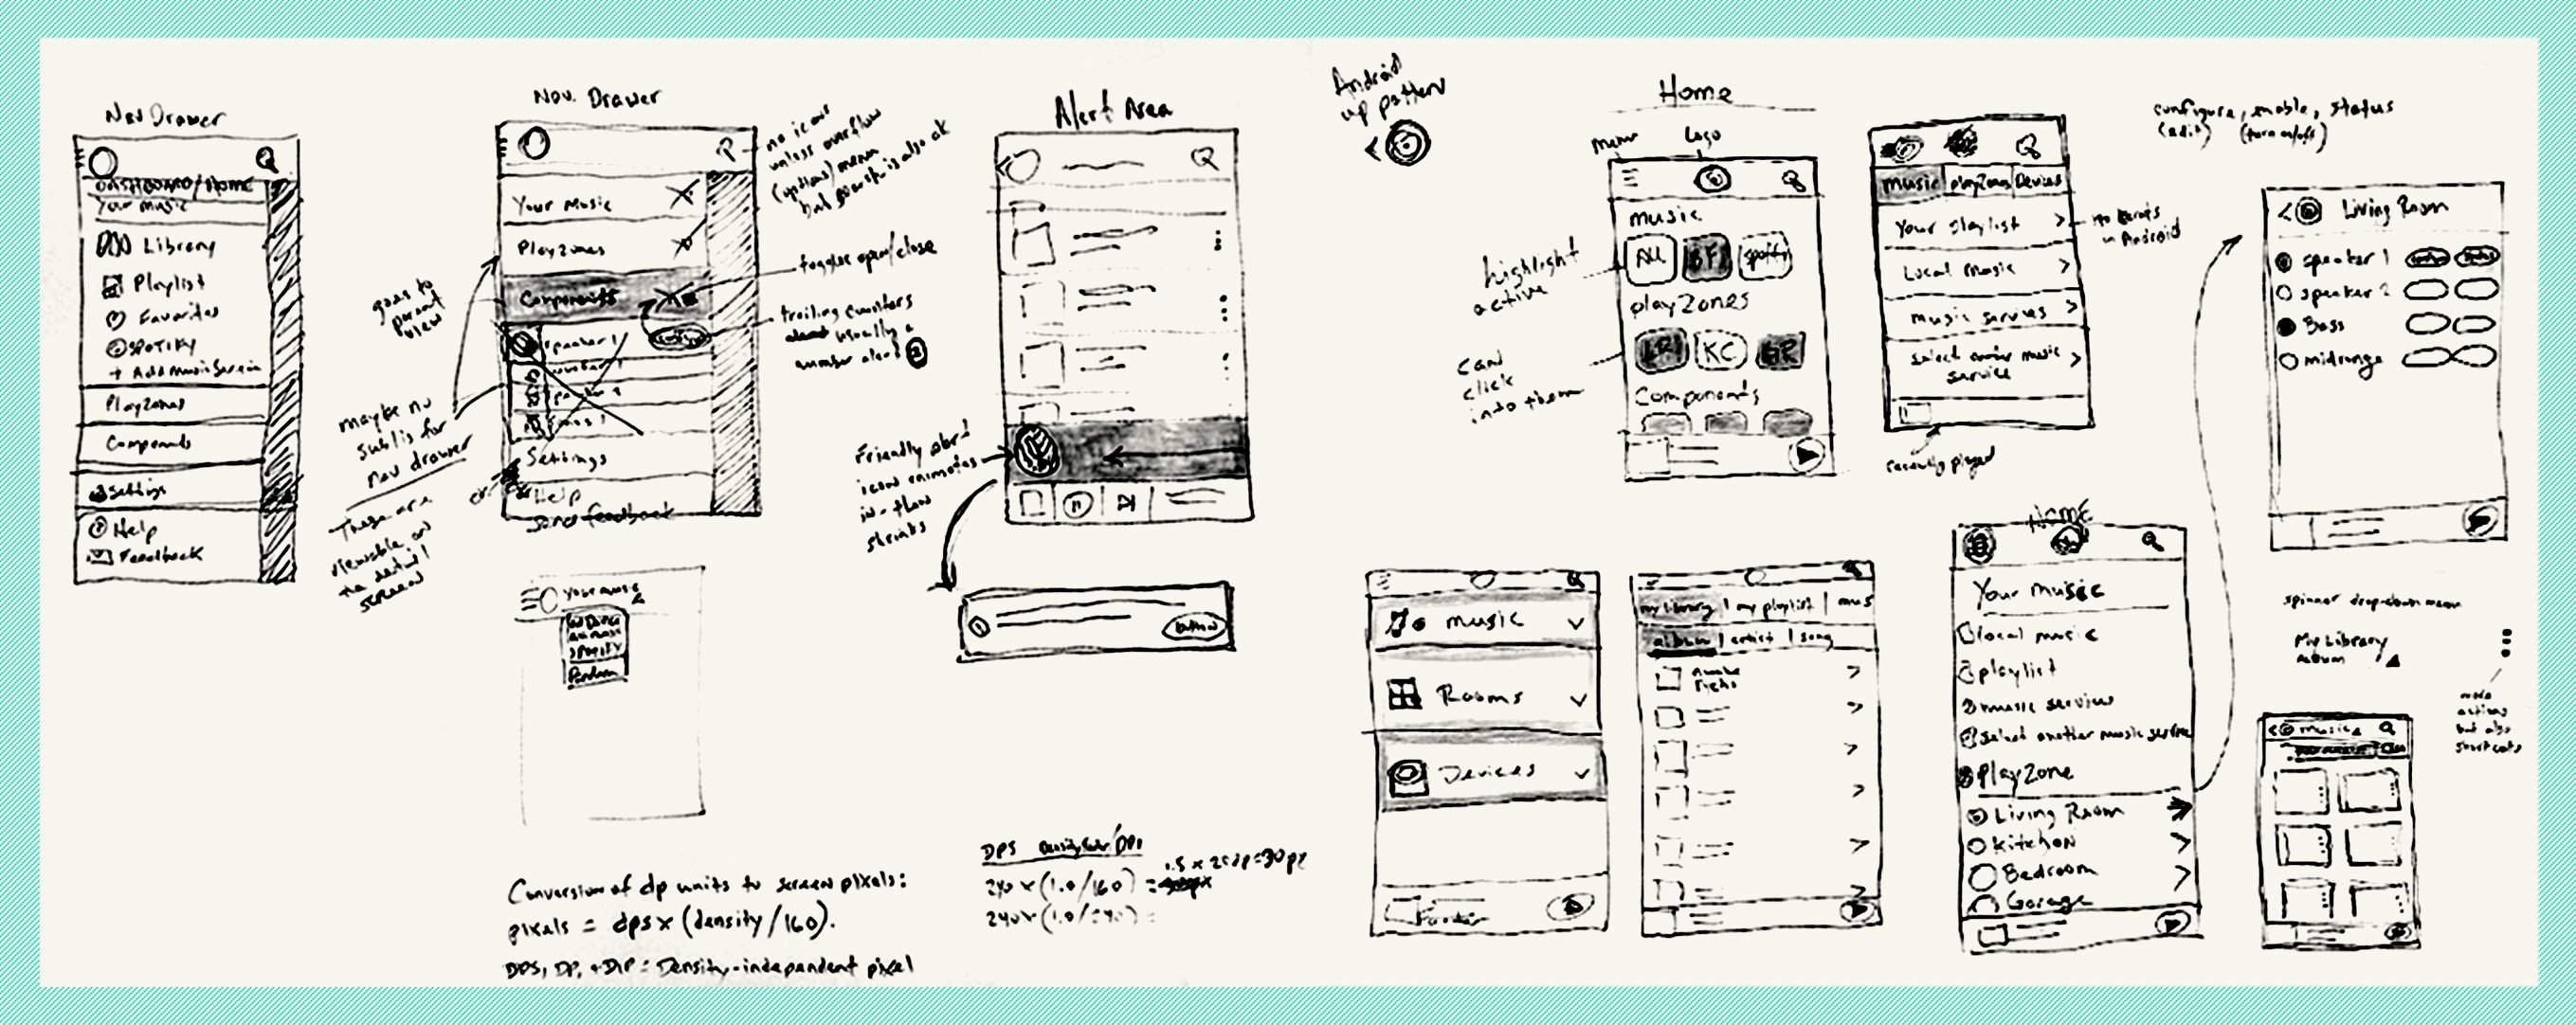 Rough Sketches of the App